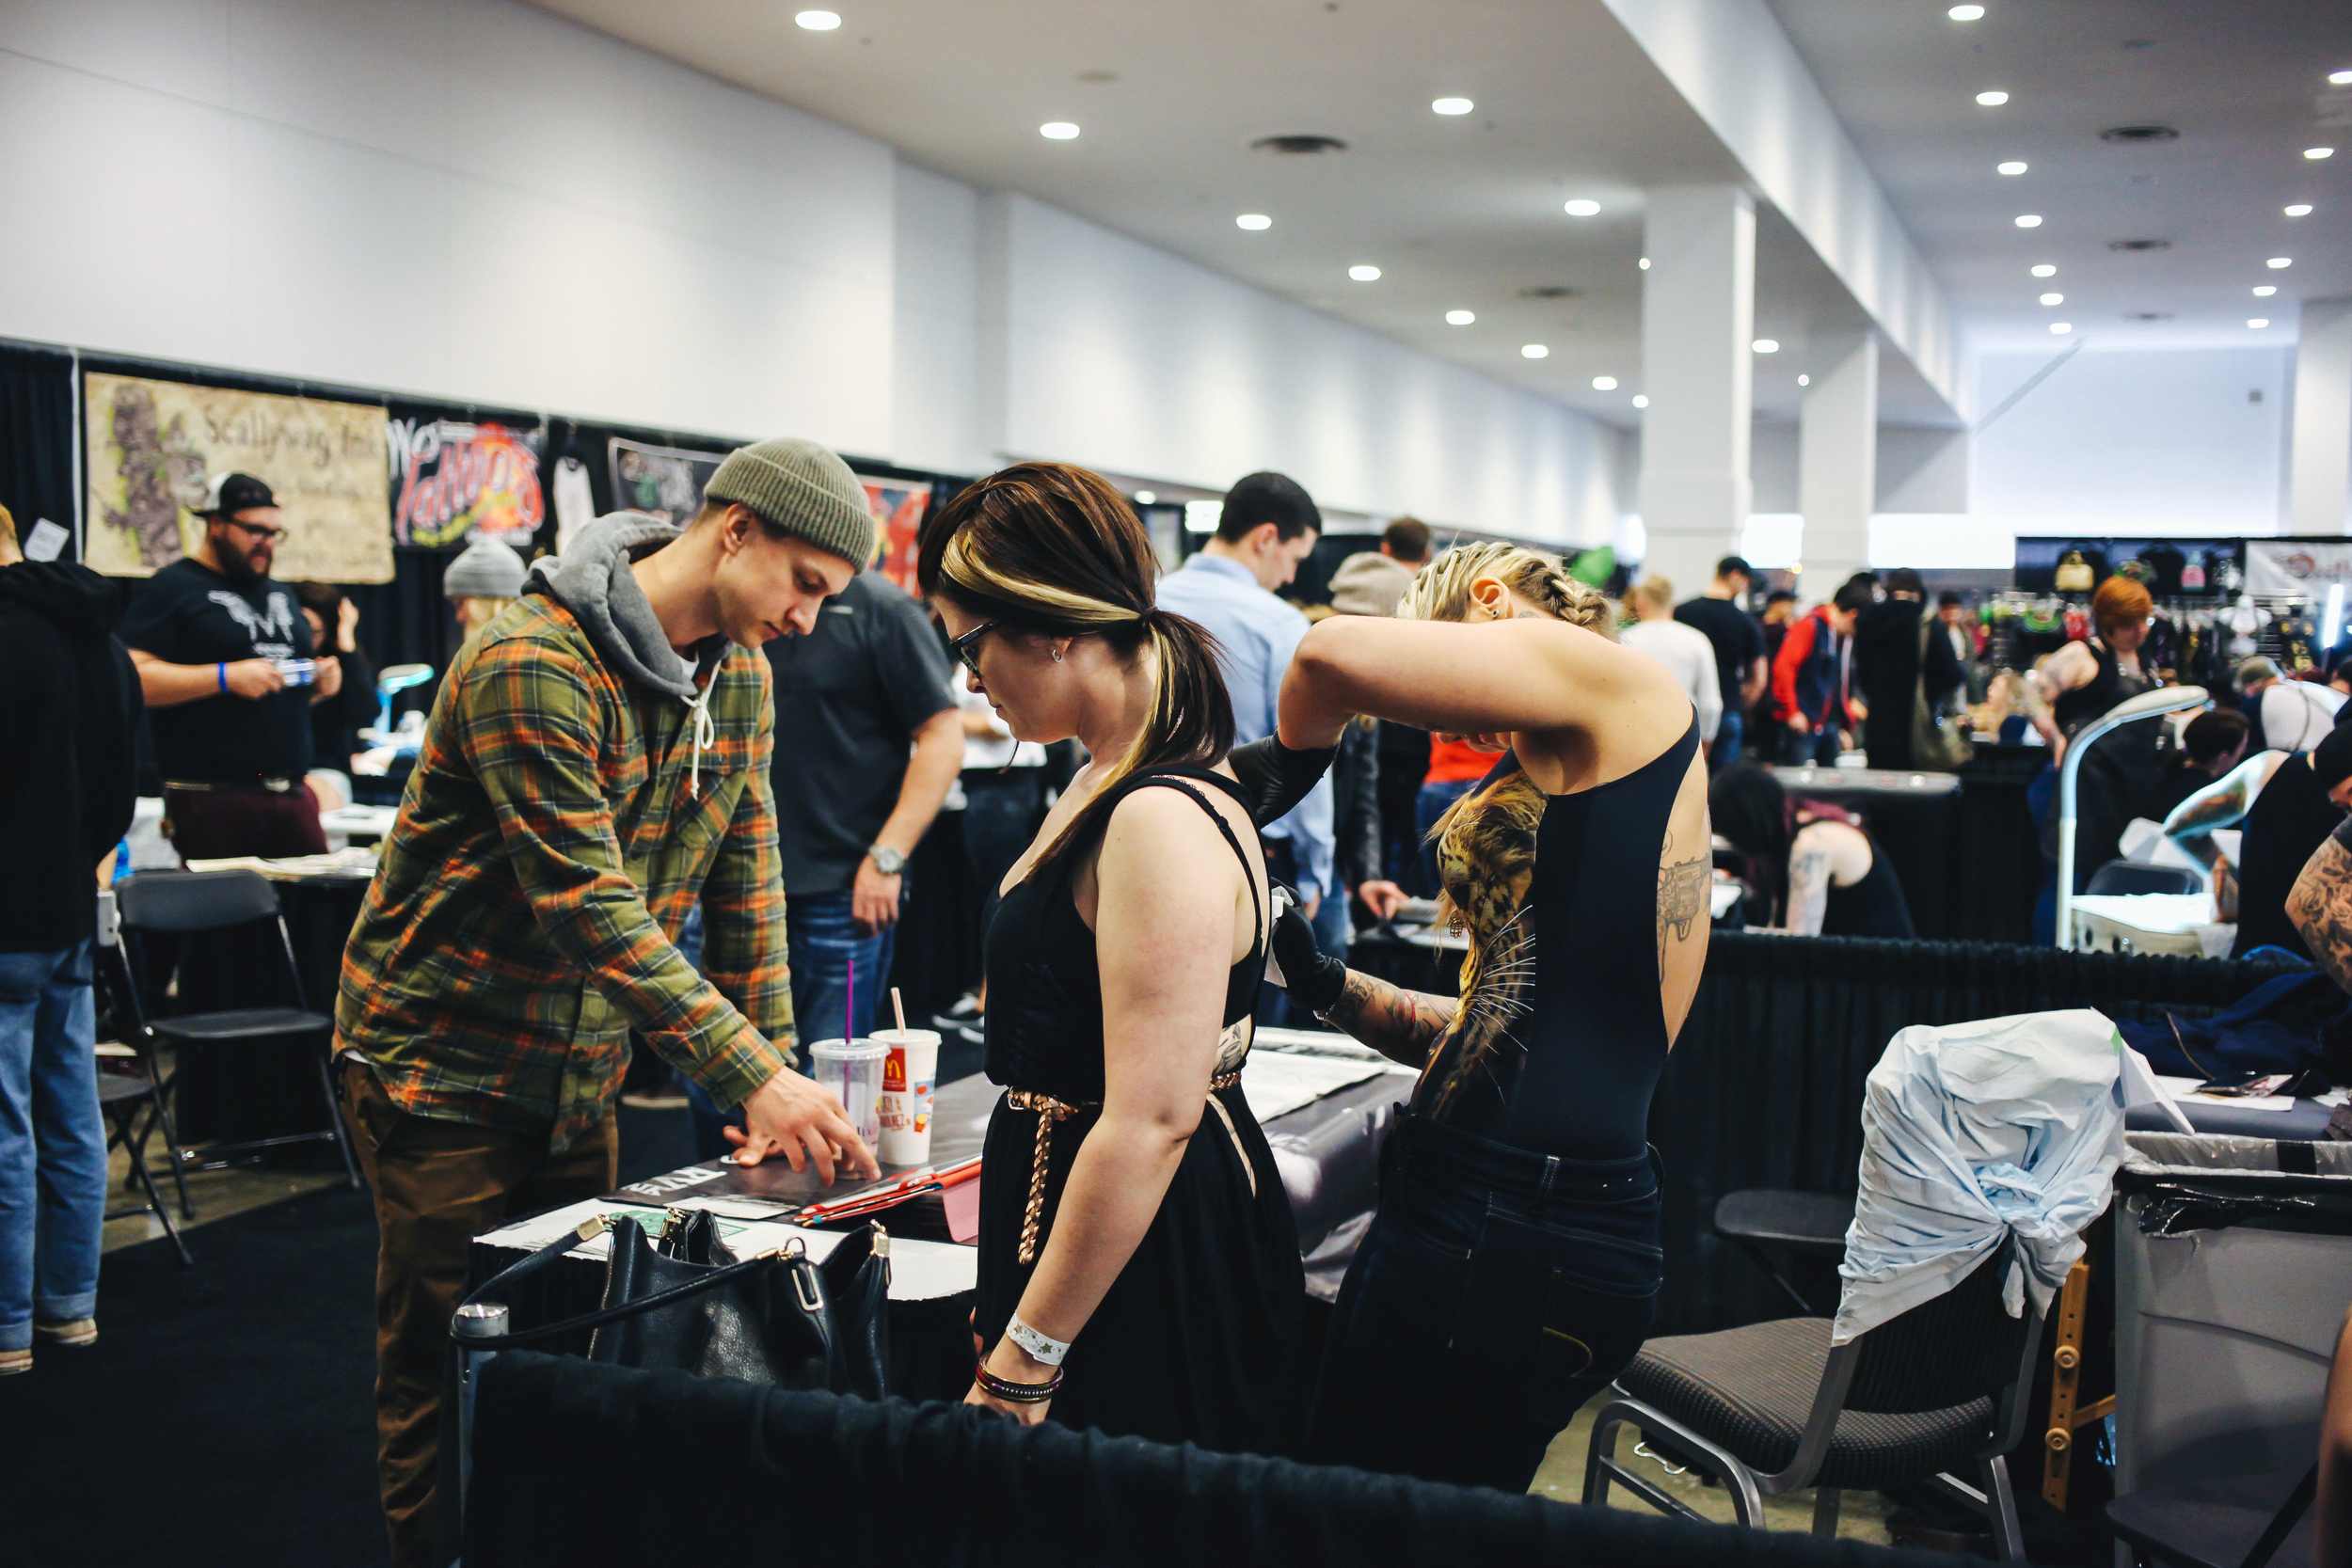 VancouverTattooConvention-26.jpg